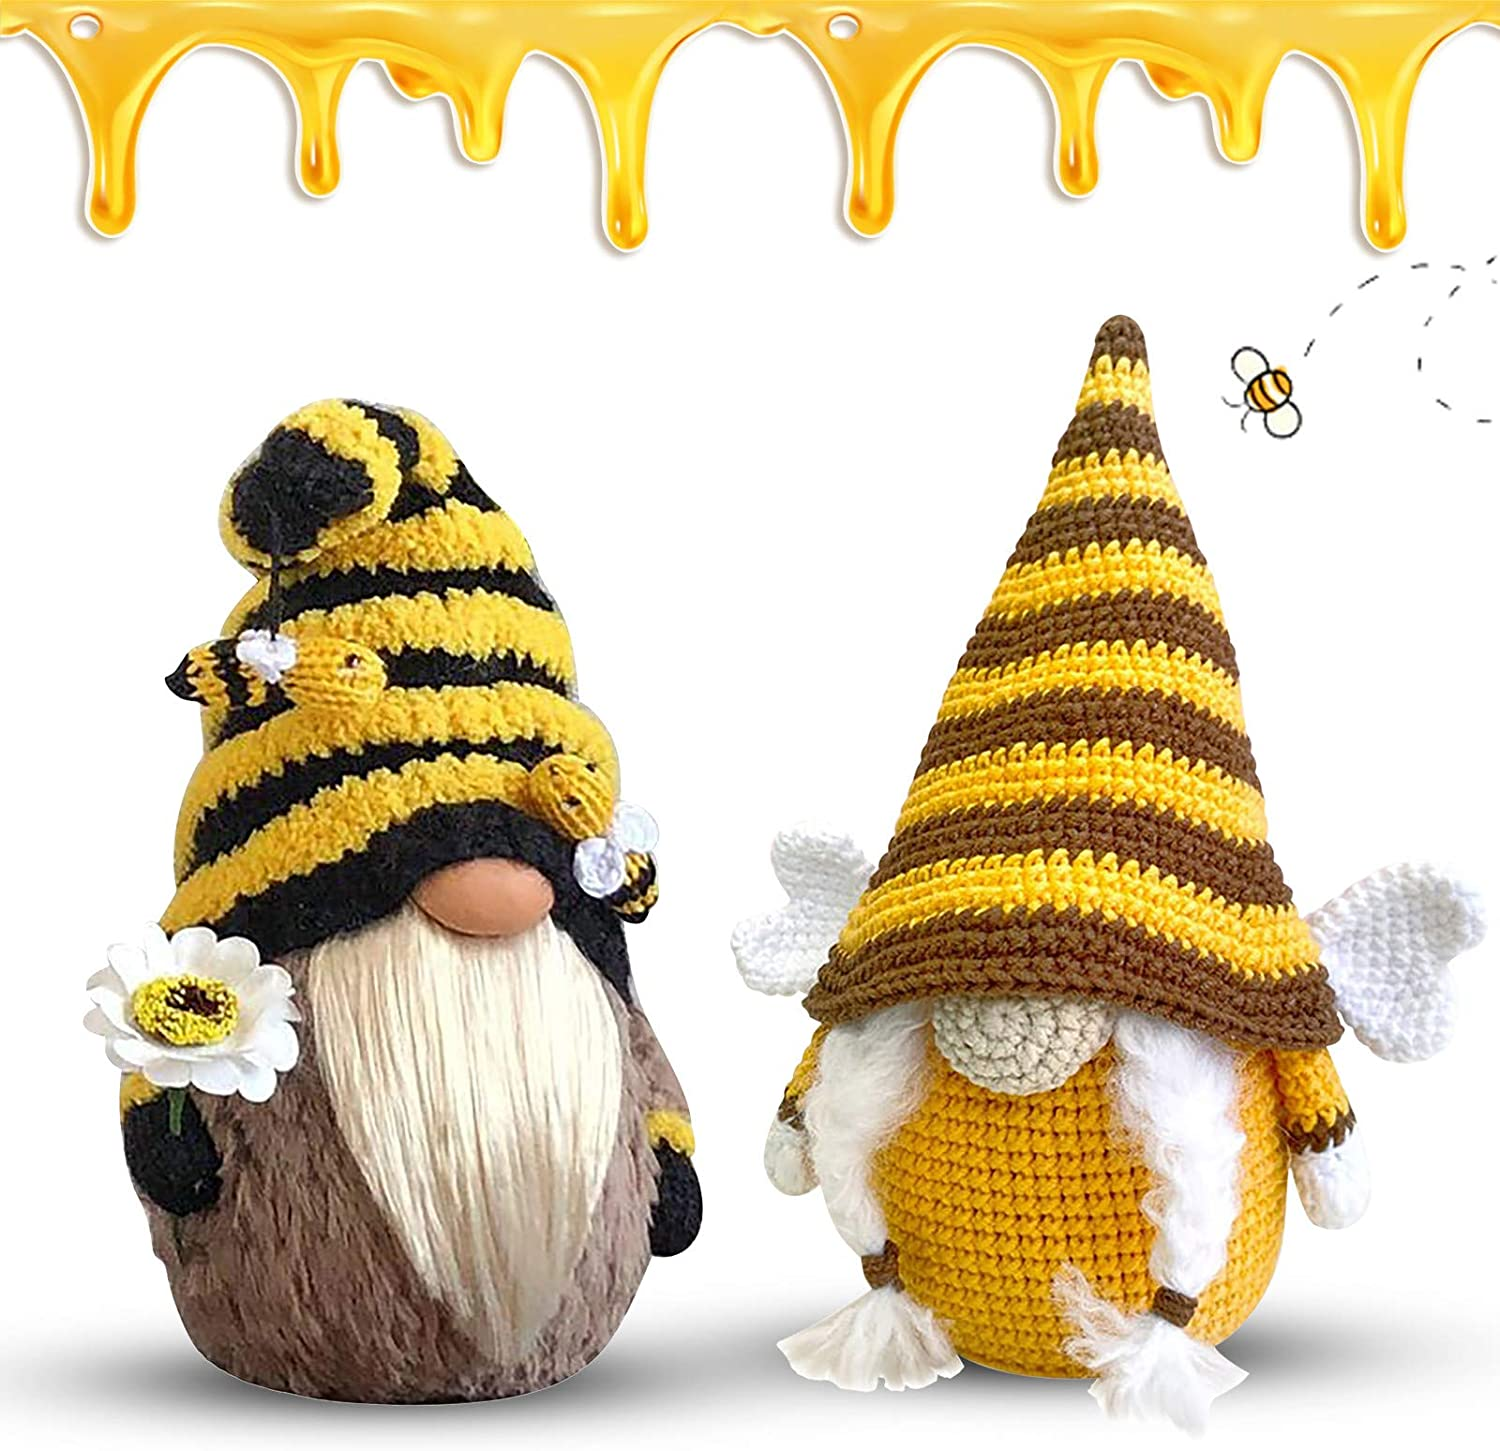 Bee Day Gifts Mr and Mrs Handmade Scandinavian Tomte Faceless Ornaments for Bee Day Home Decoration Blekii 2Pcs Bee Gnomes Plush Decorations